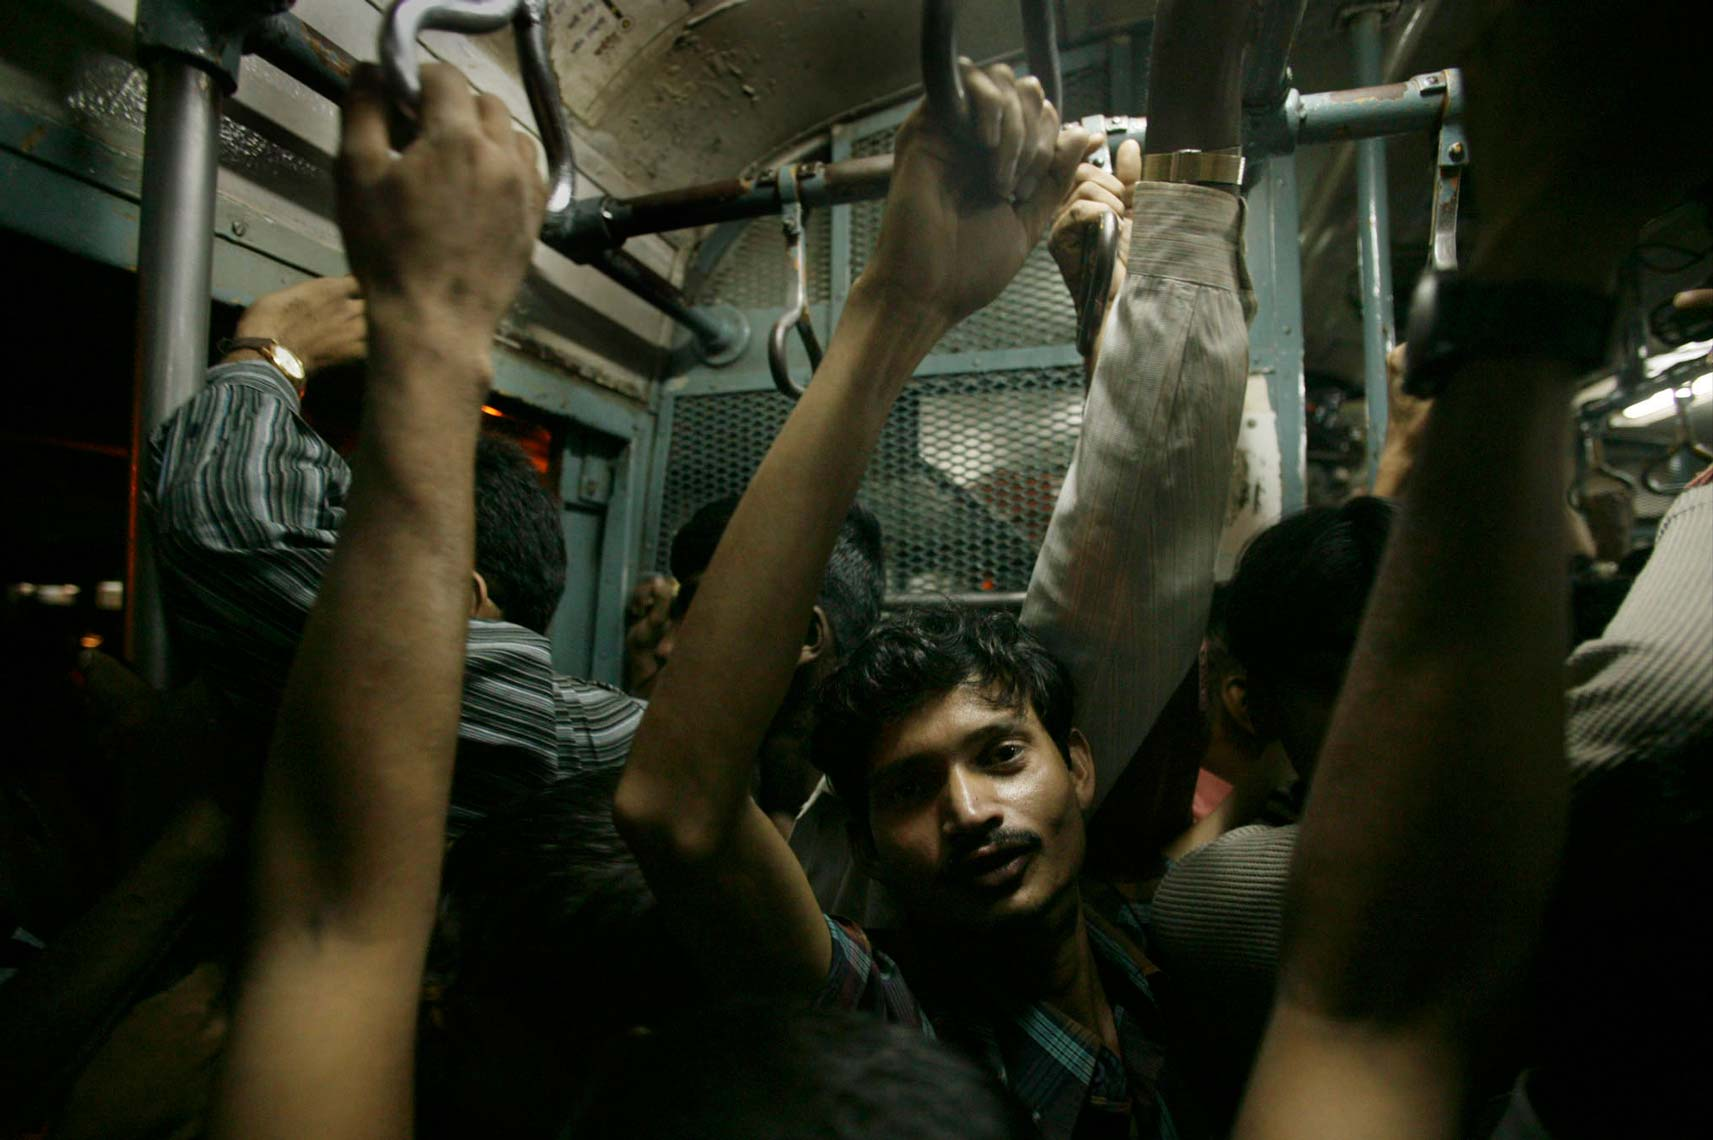 mumbai_trains983.jpg